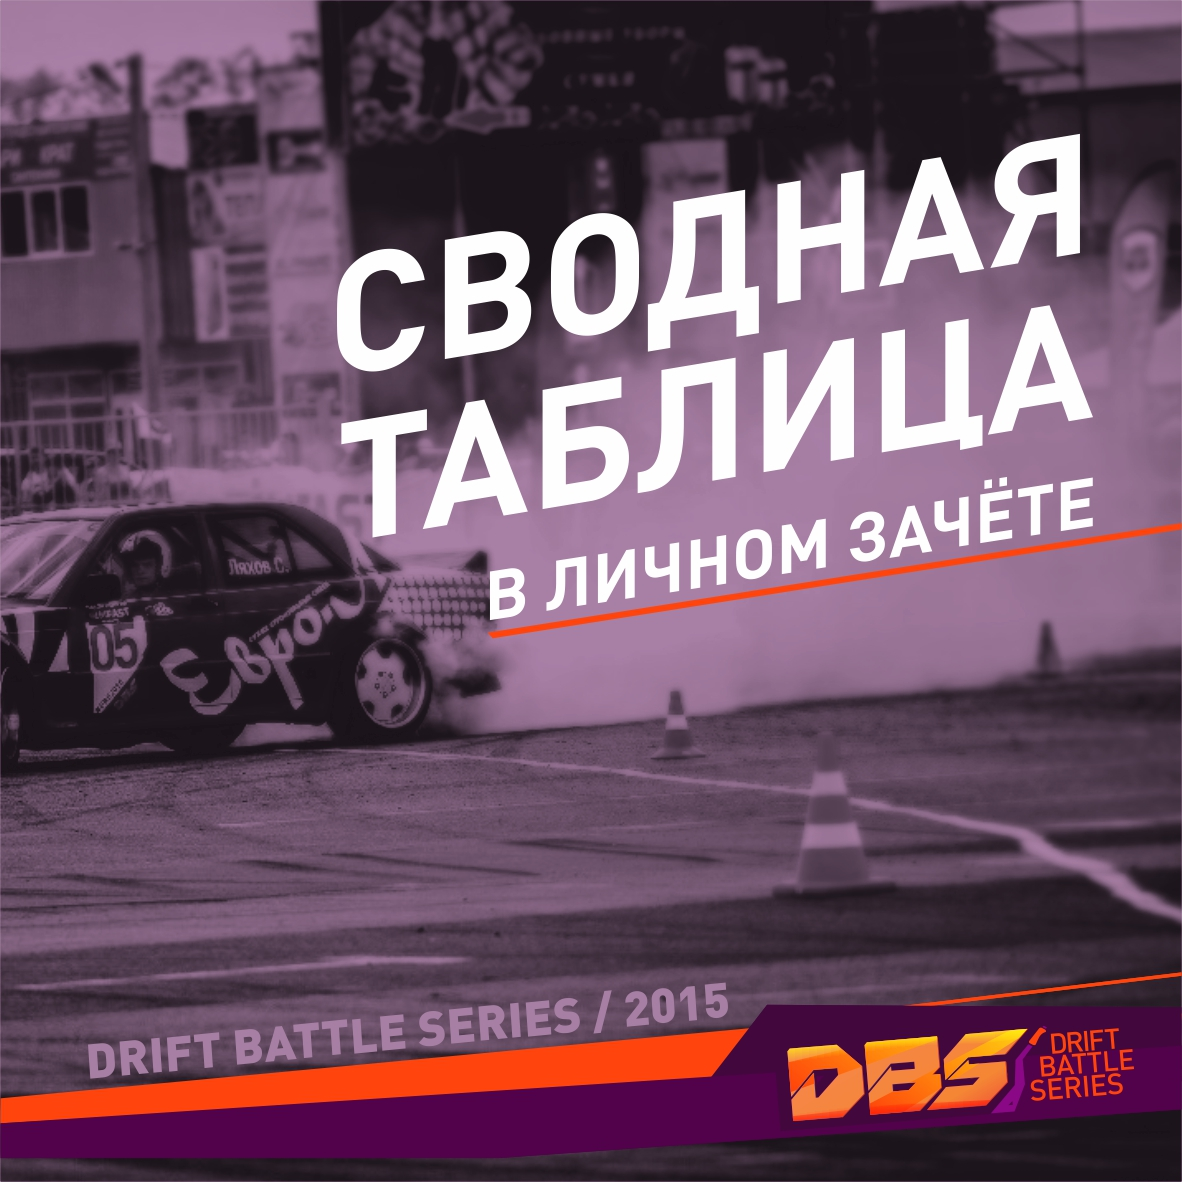 Сводная таблица в личном зачете чемпионата Drift Battle Series 2015